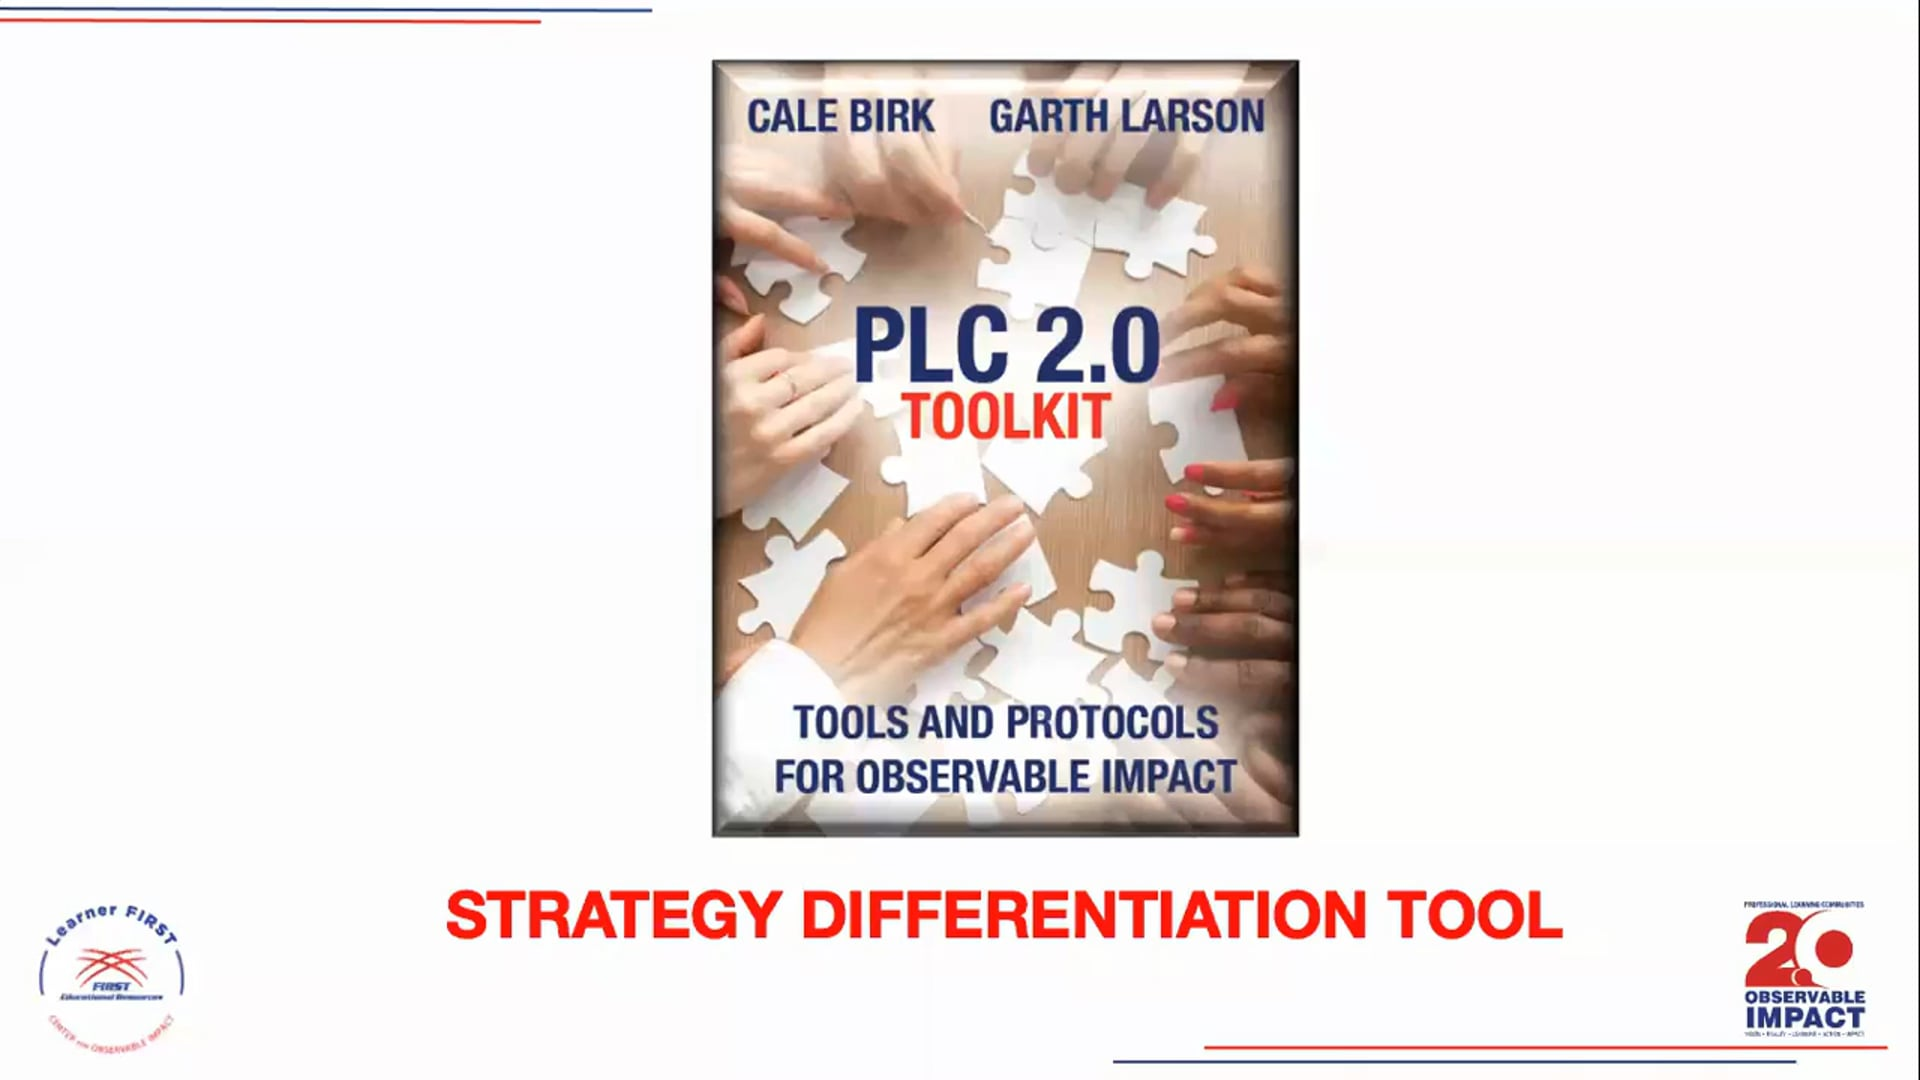 PLC 2.0 - Strategy Differentiation Tool